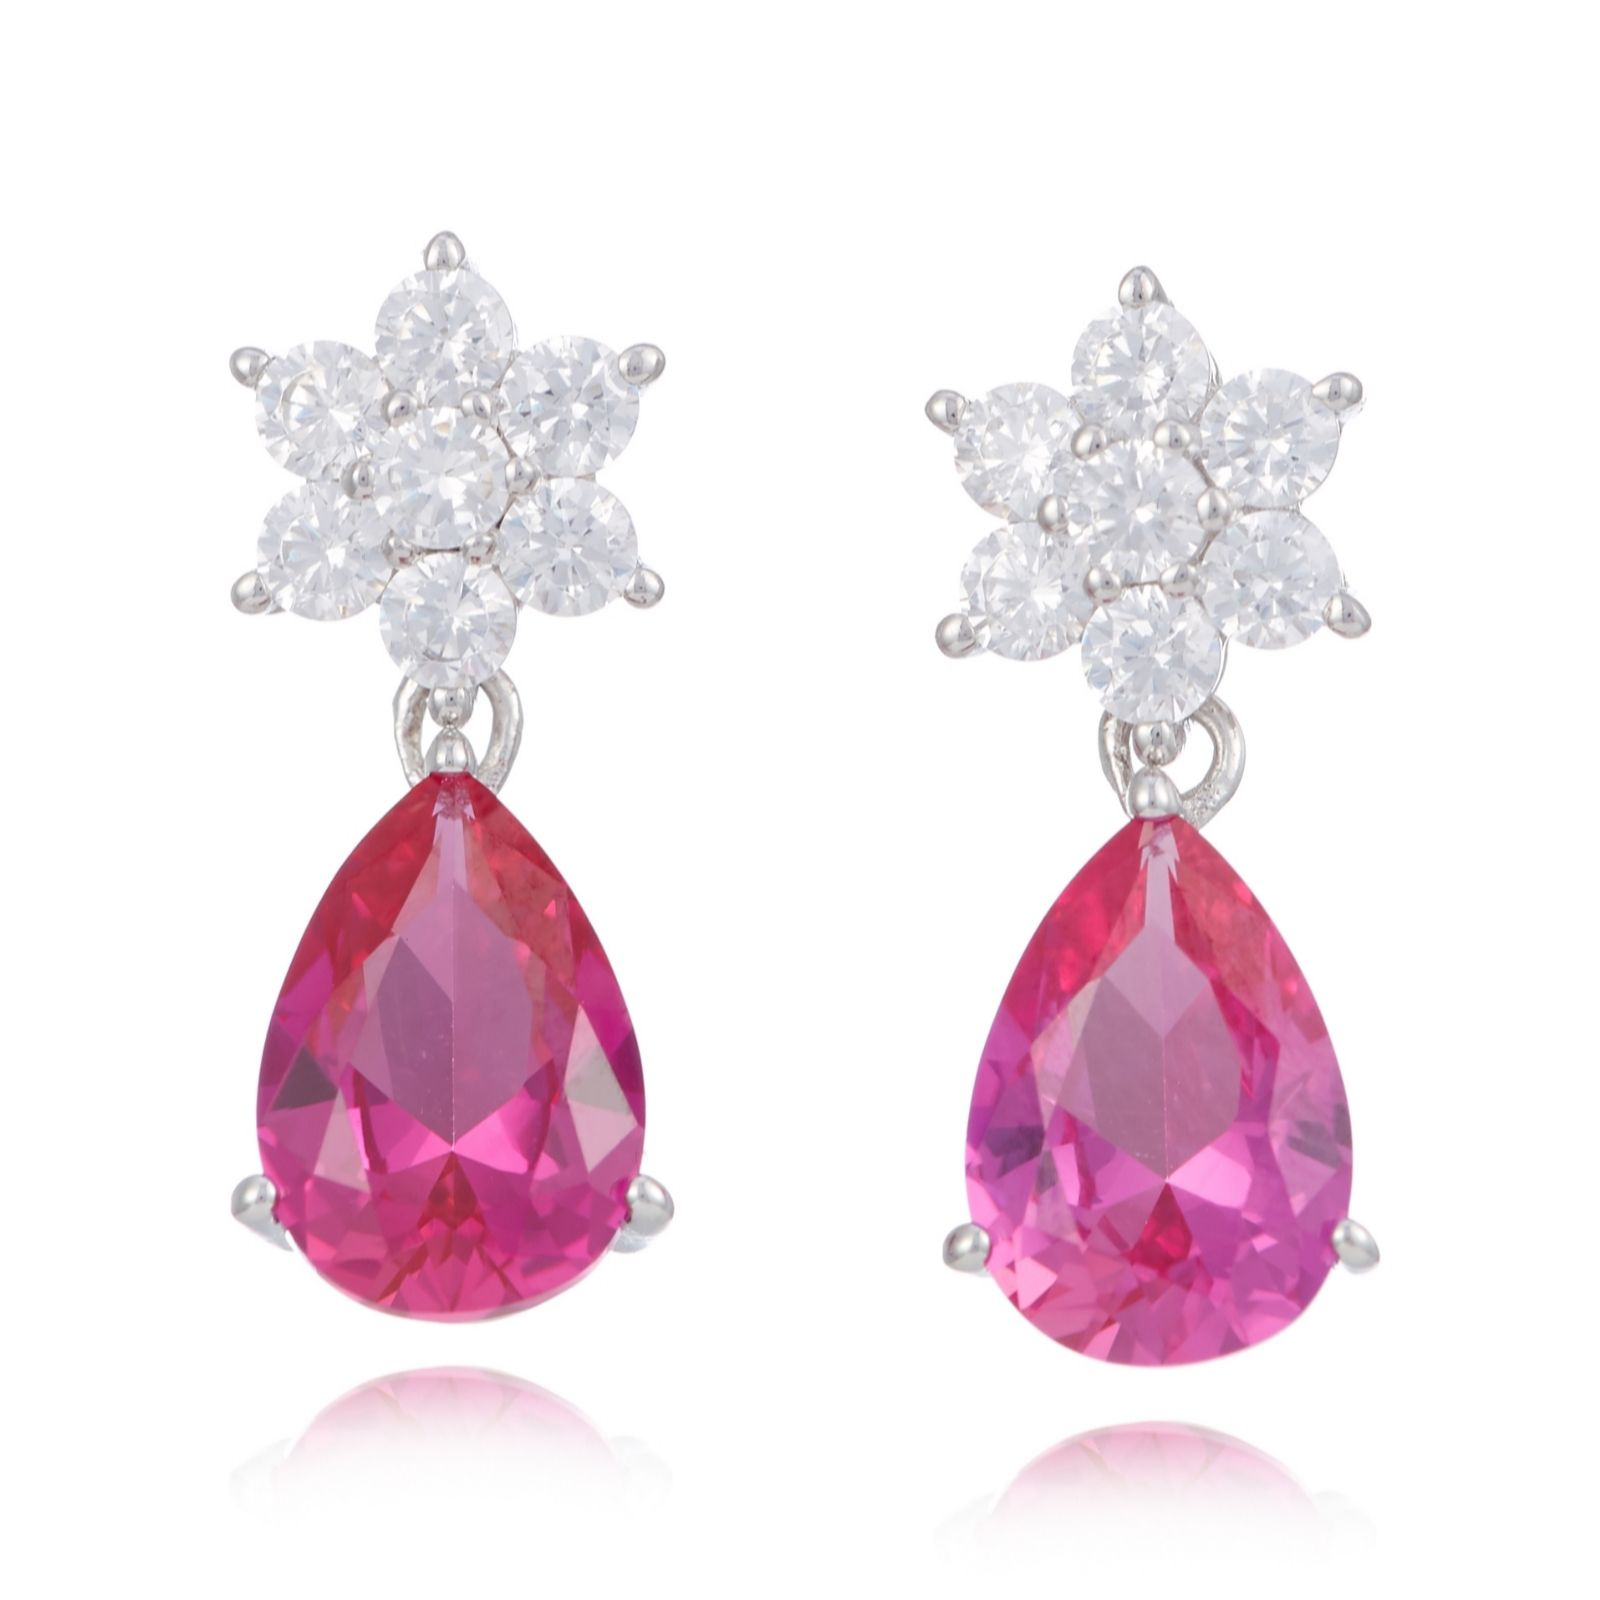 e6a9998c8 Diamonique 4.7ct tw Cluster Stud Drop Earrings Sterling Silver - QVC ...